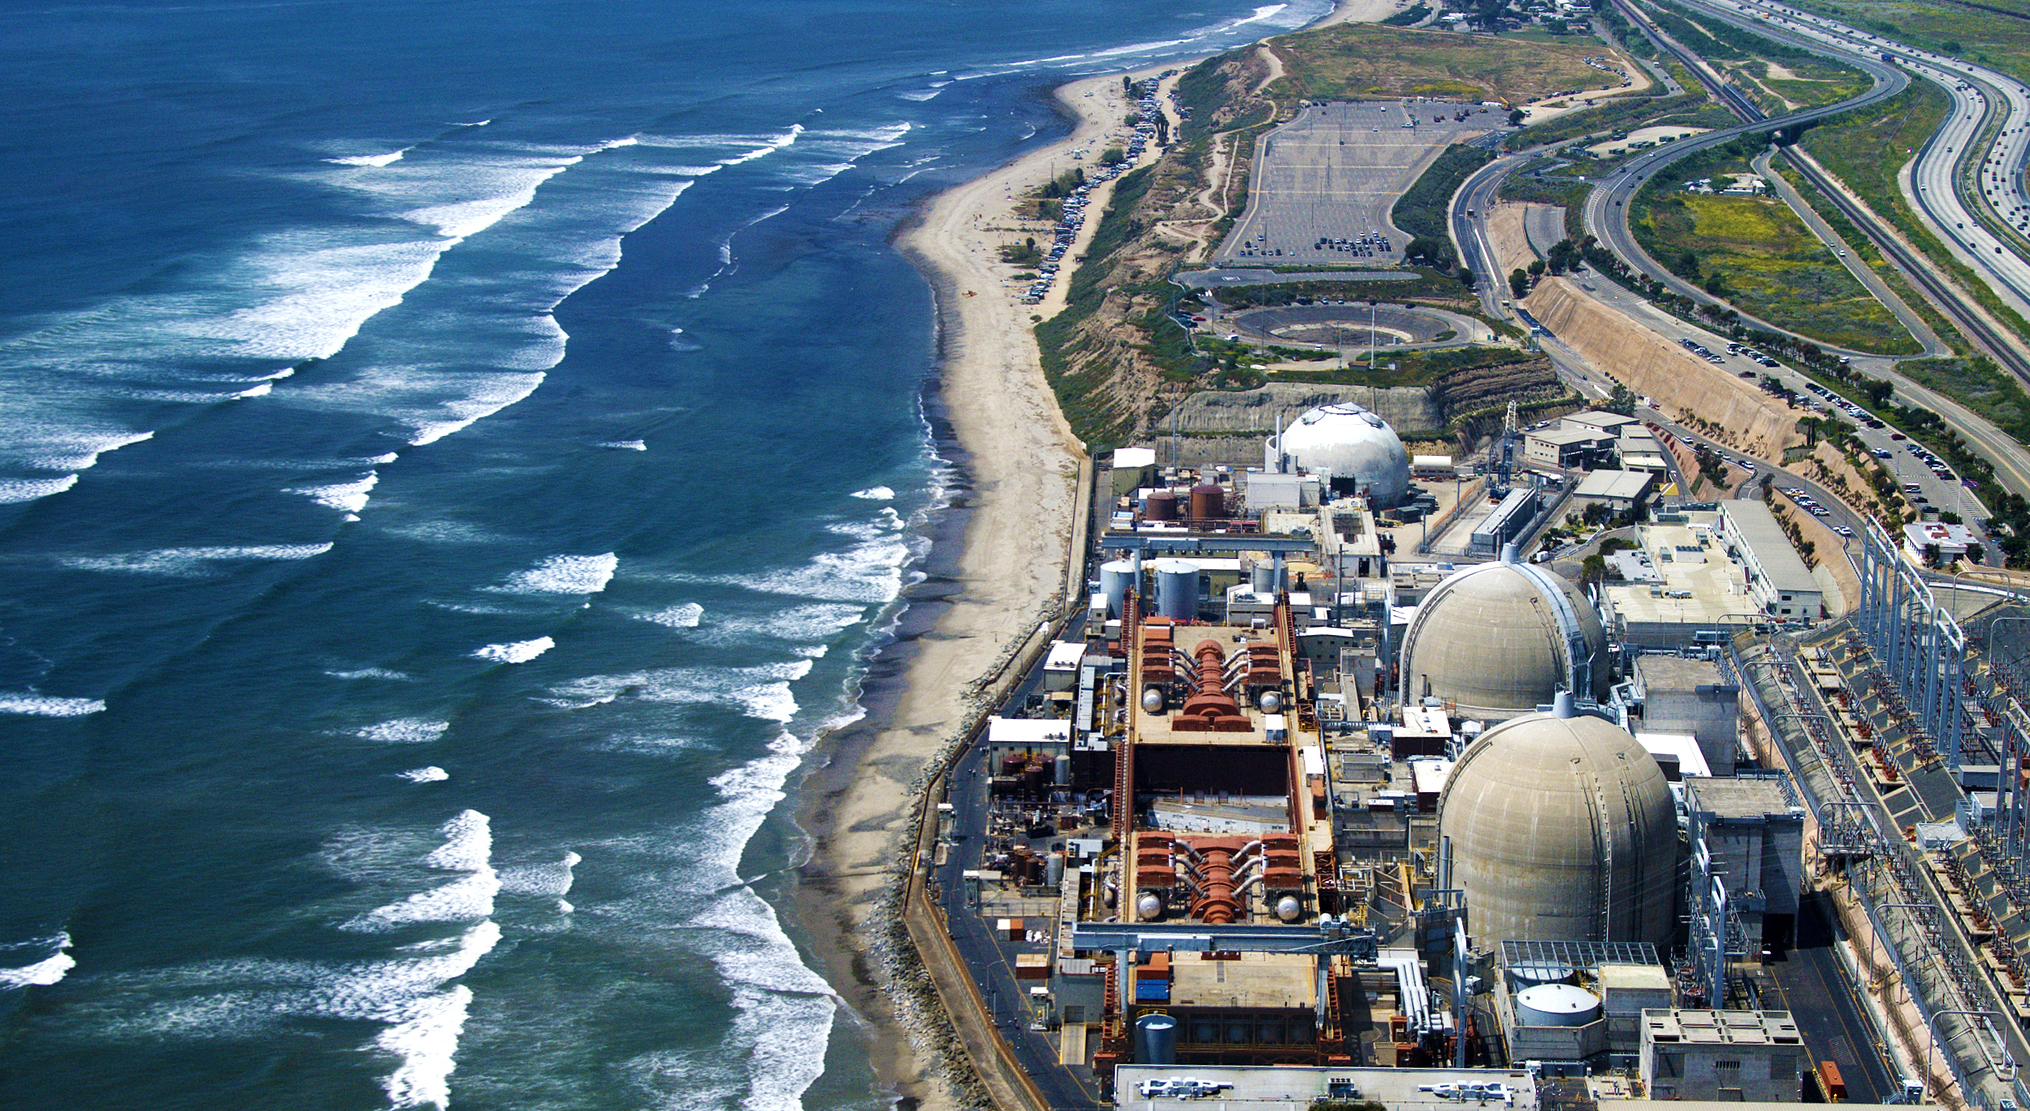 San Onofre Nuclear Generating Station - Aerial View